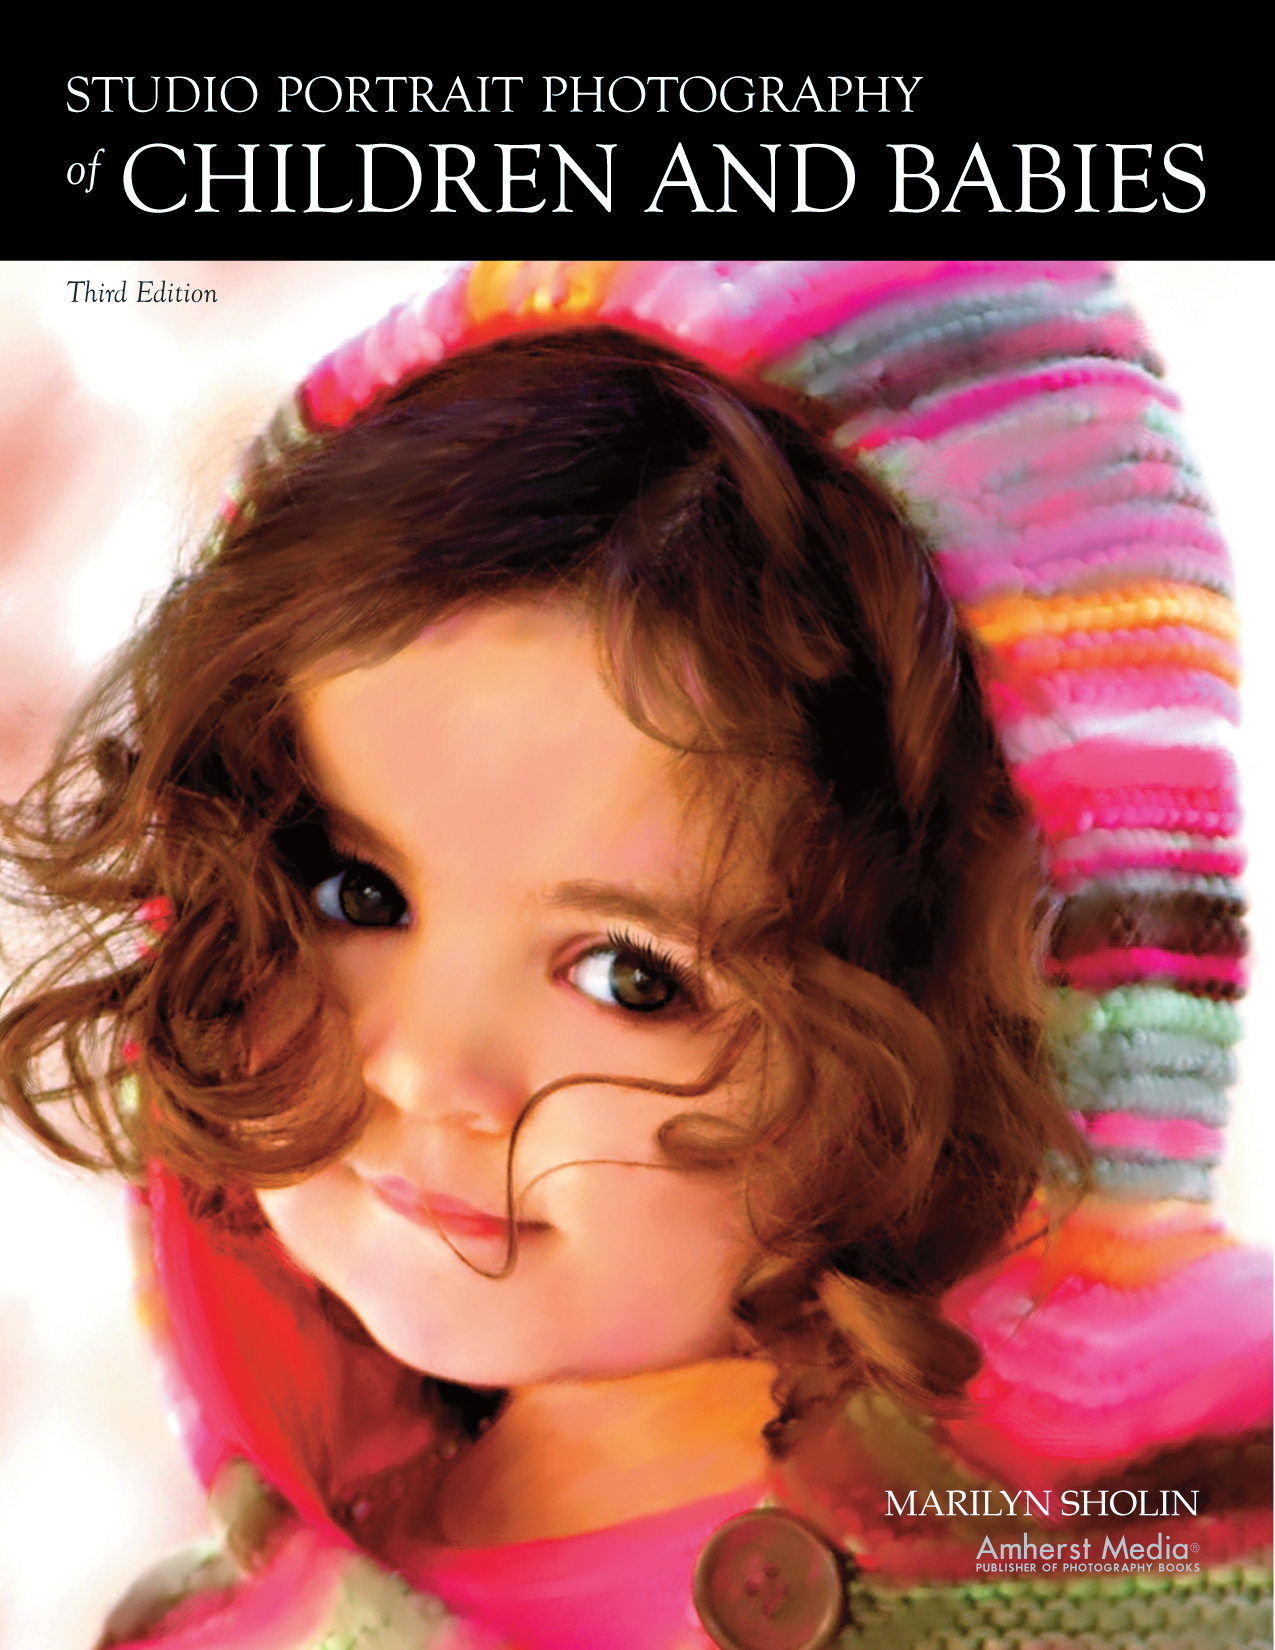 Studio Portrait Photography of Children and Babies, 3rd Edition by